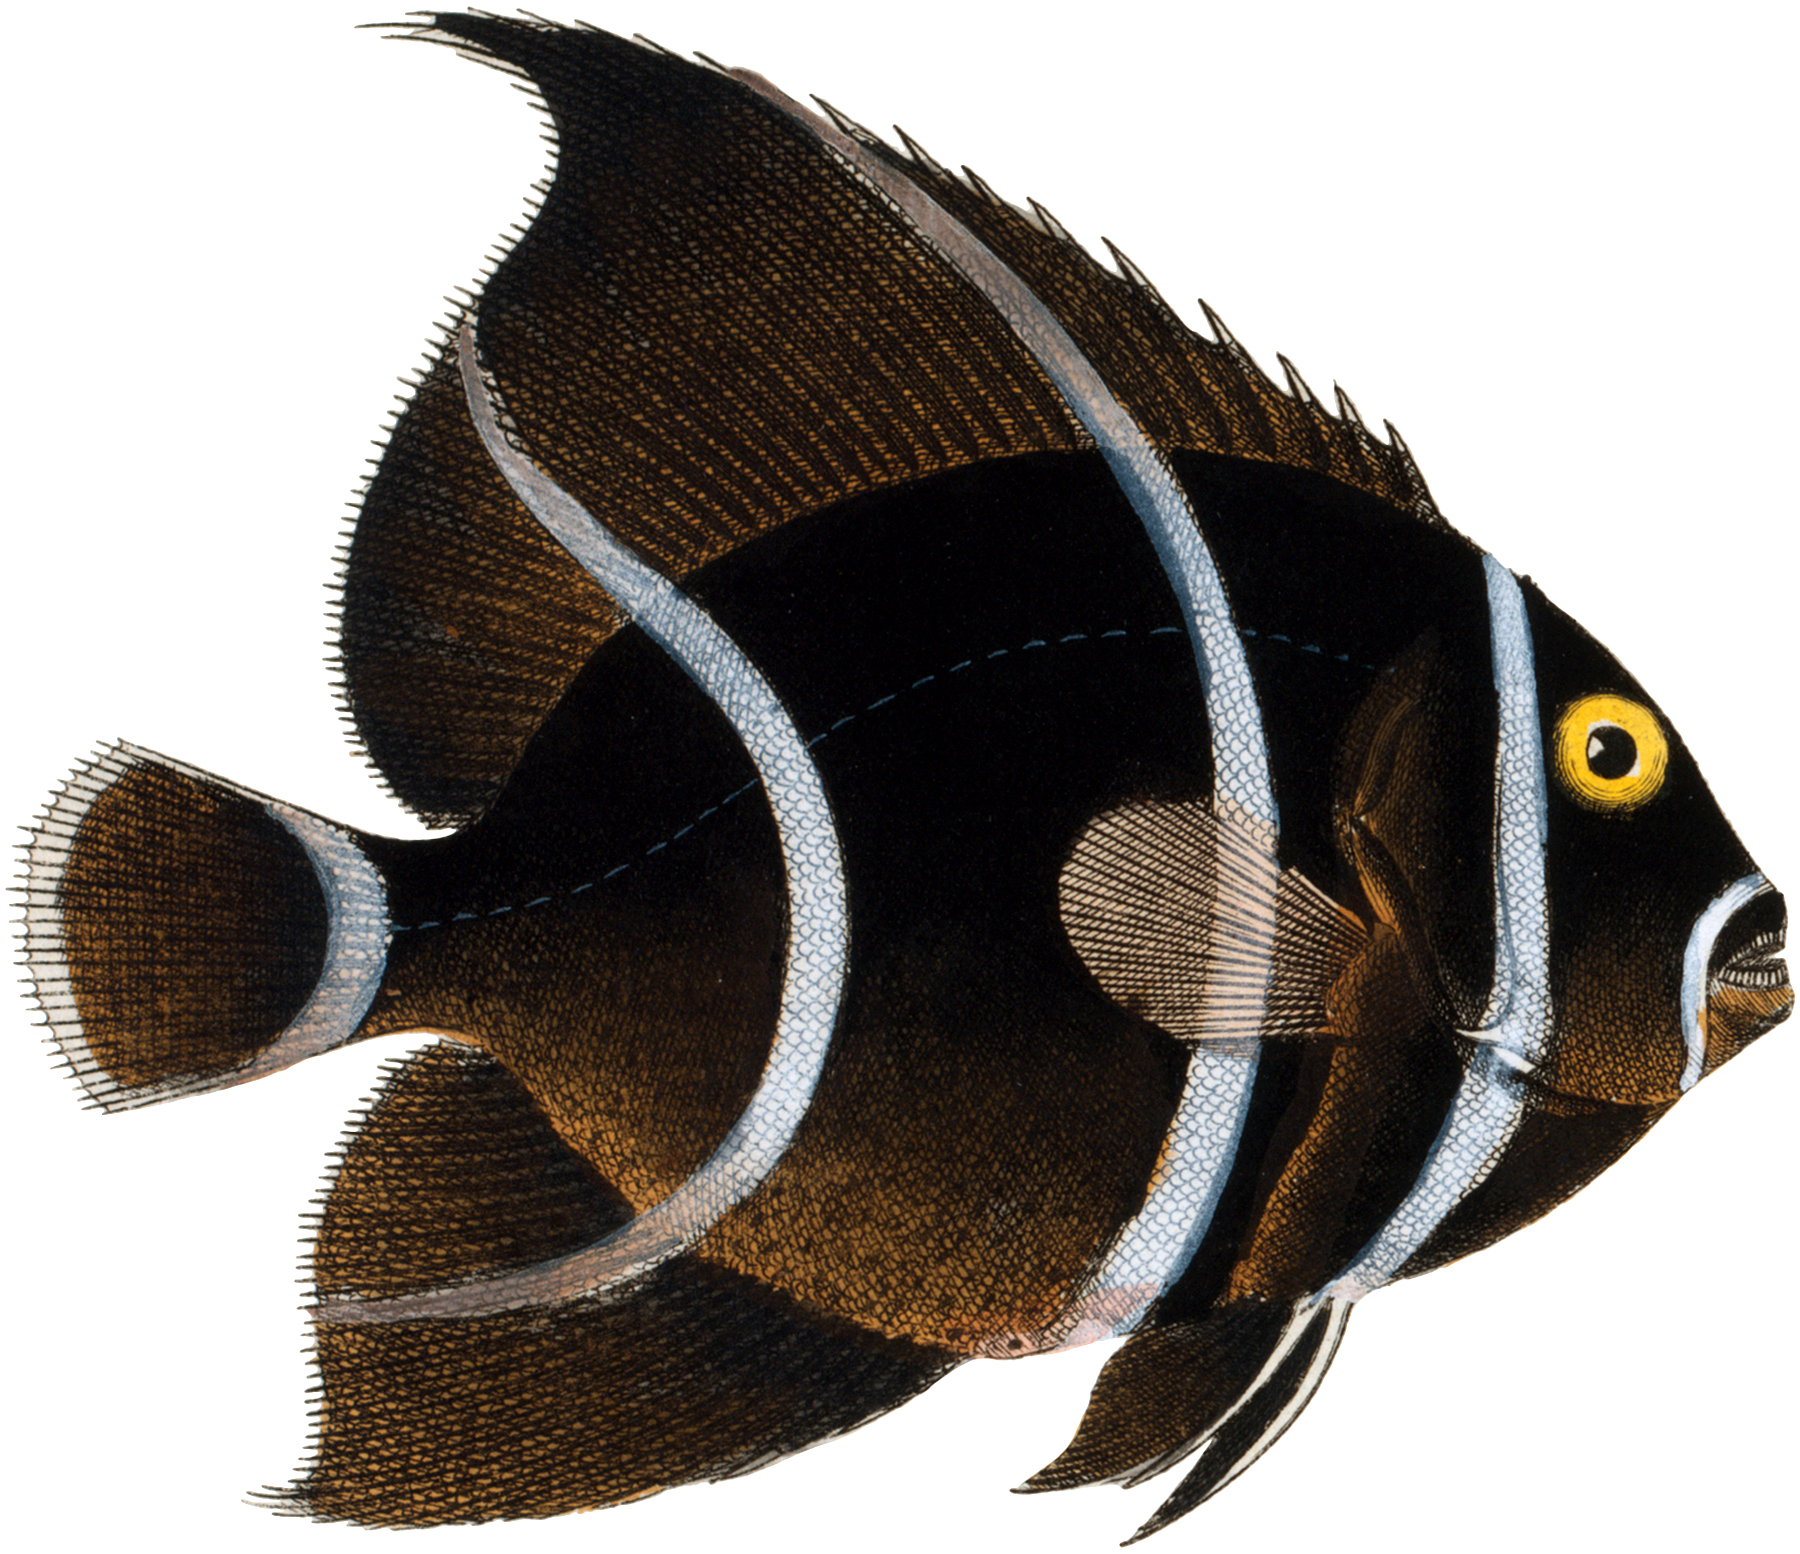 Public Domain Fish Image